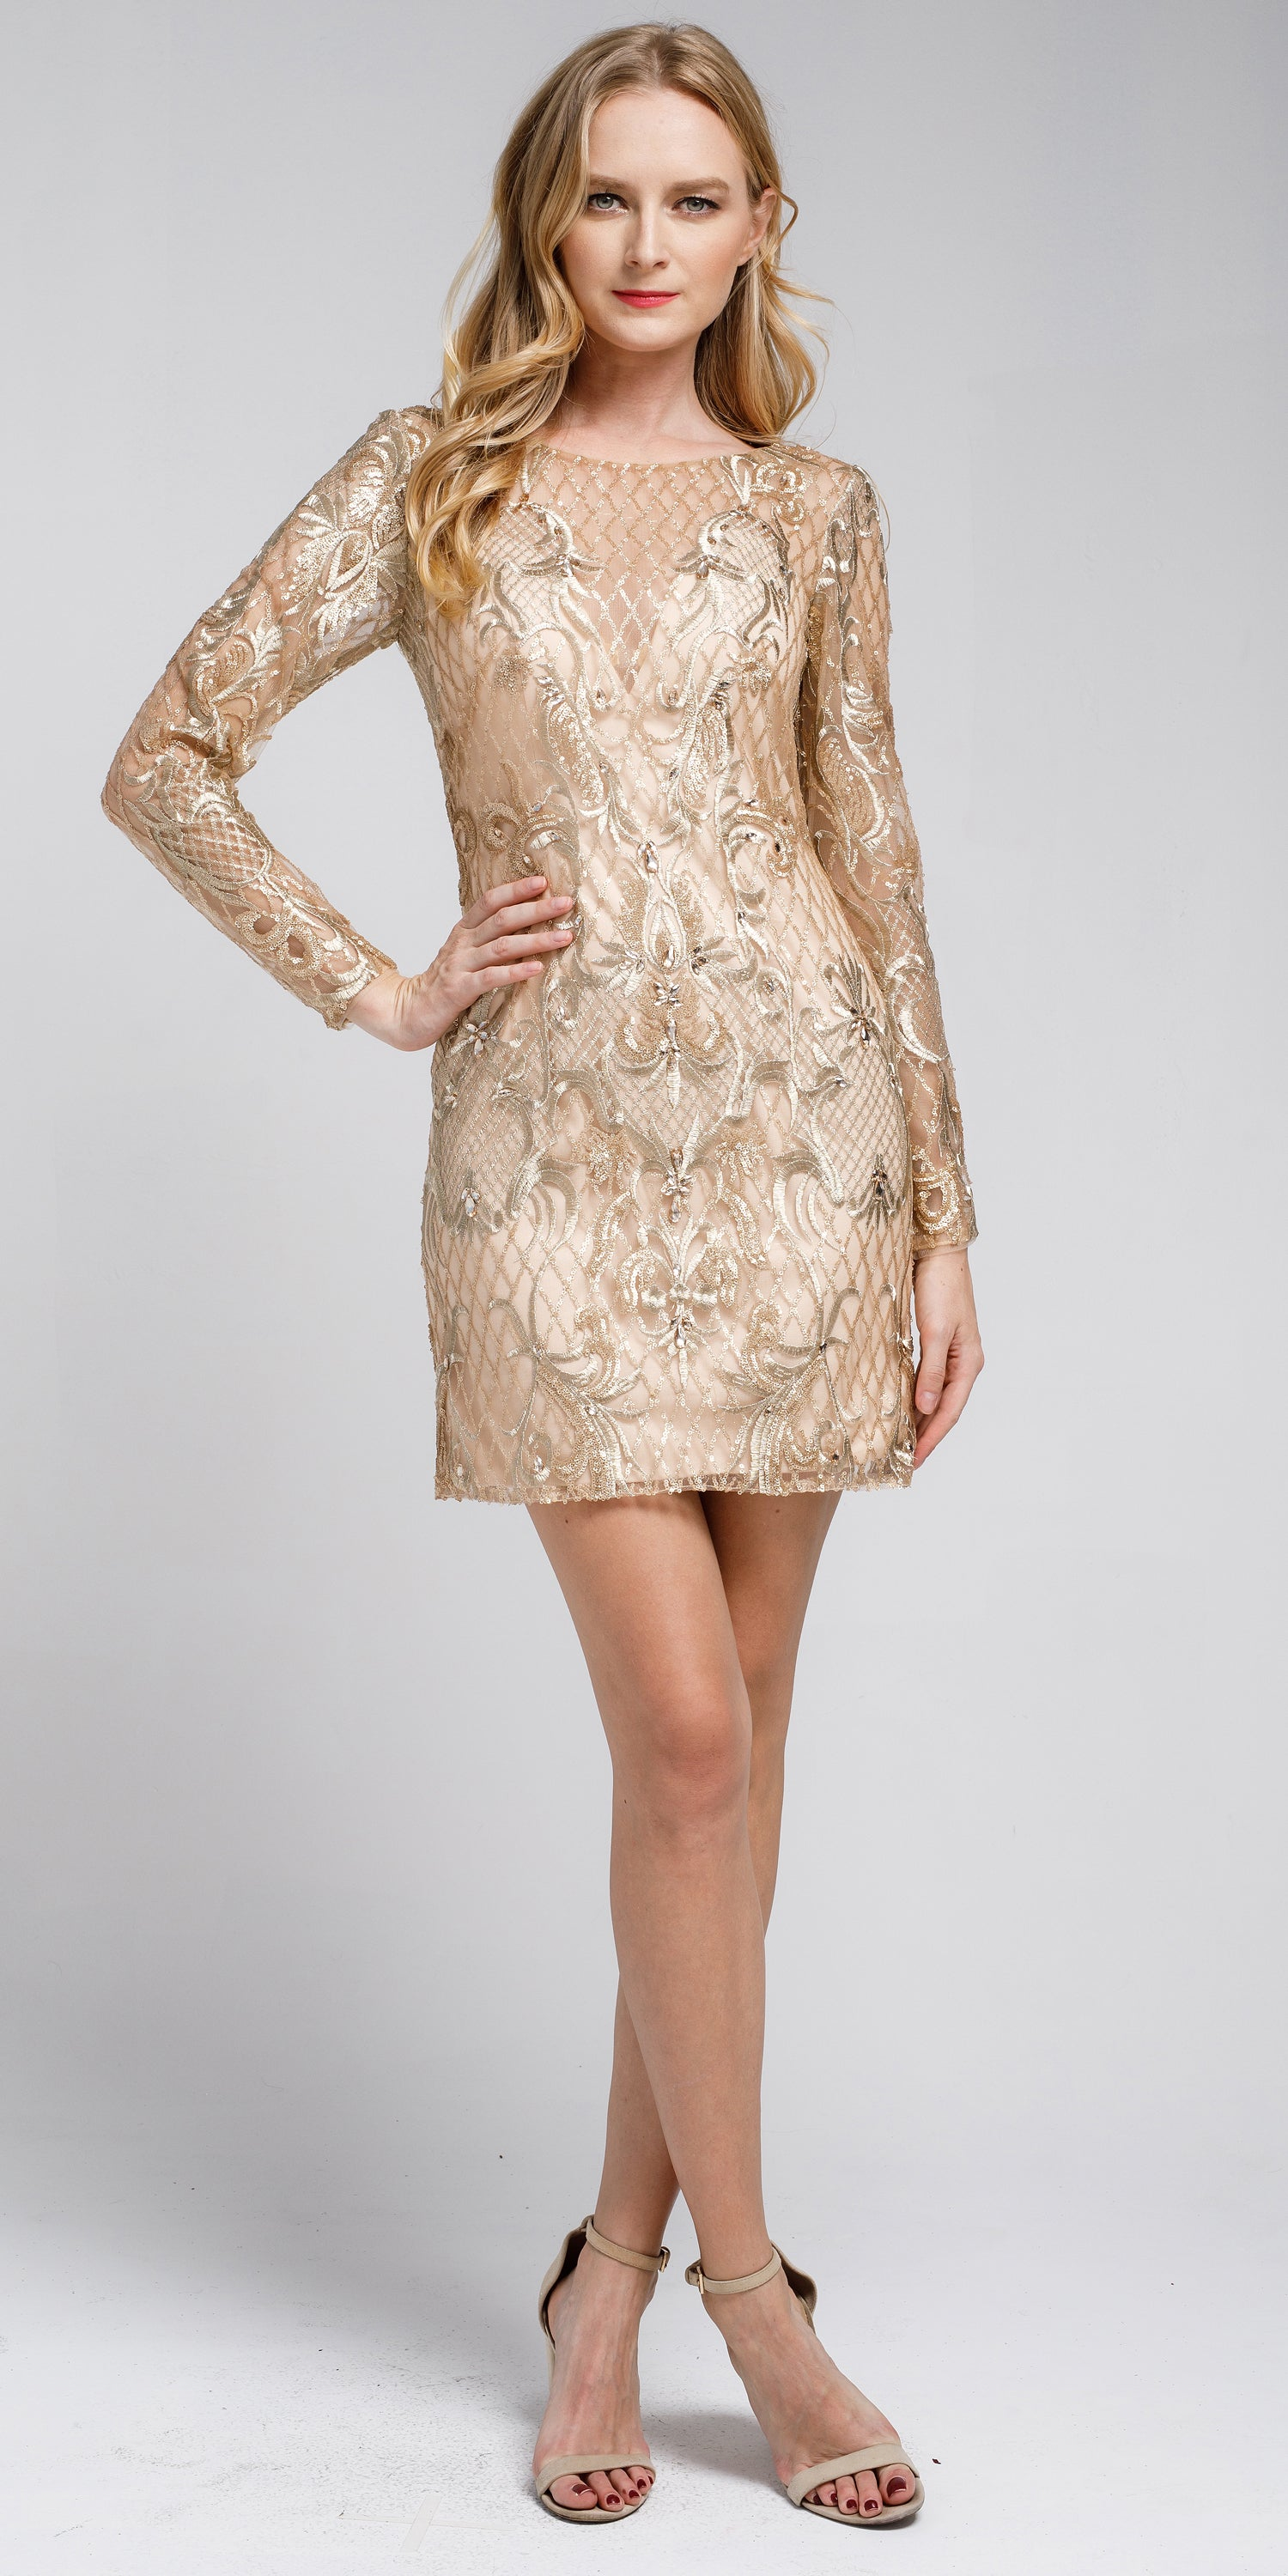 Main image of Embellished Full Sleeve Prom Dress